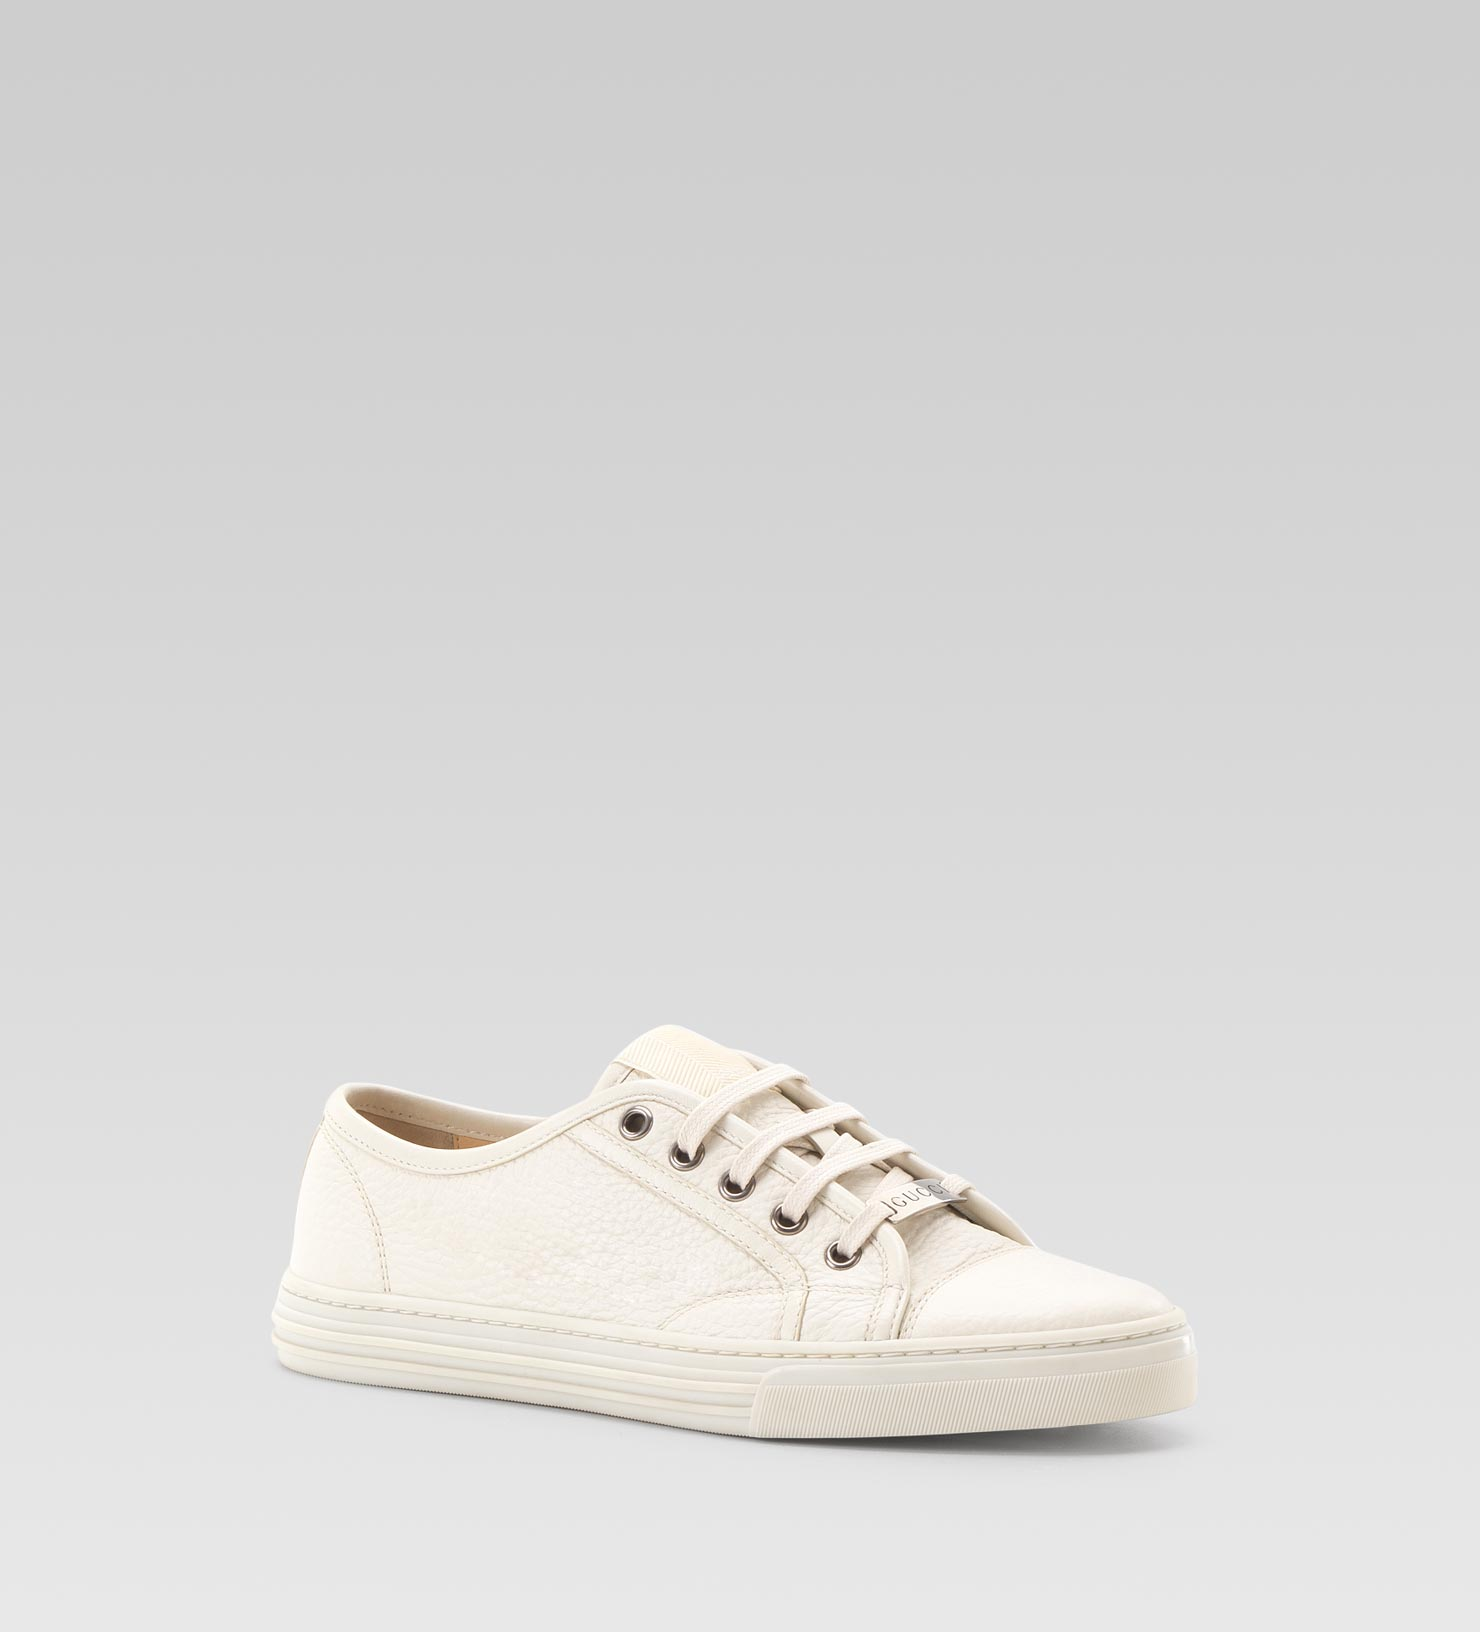 3502831133a Lyst - Gucci California Low Laceup Sneaker in White for Men